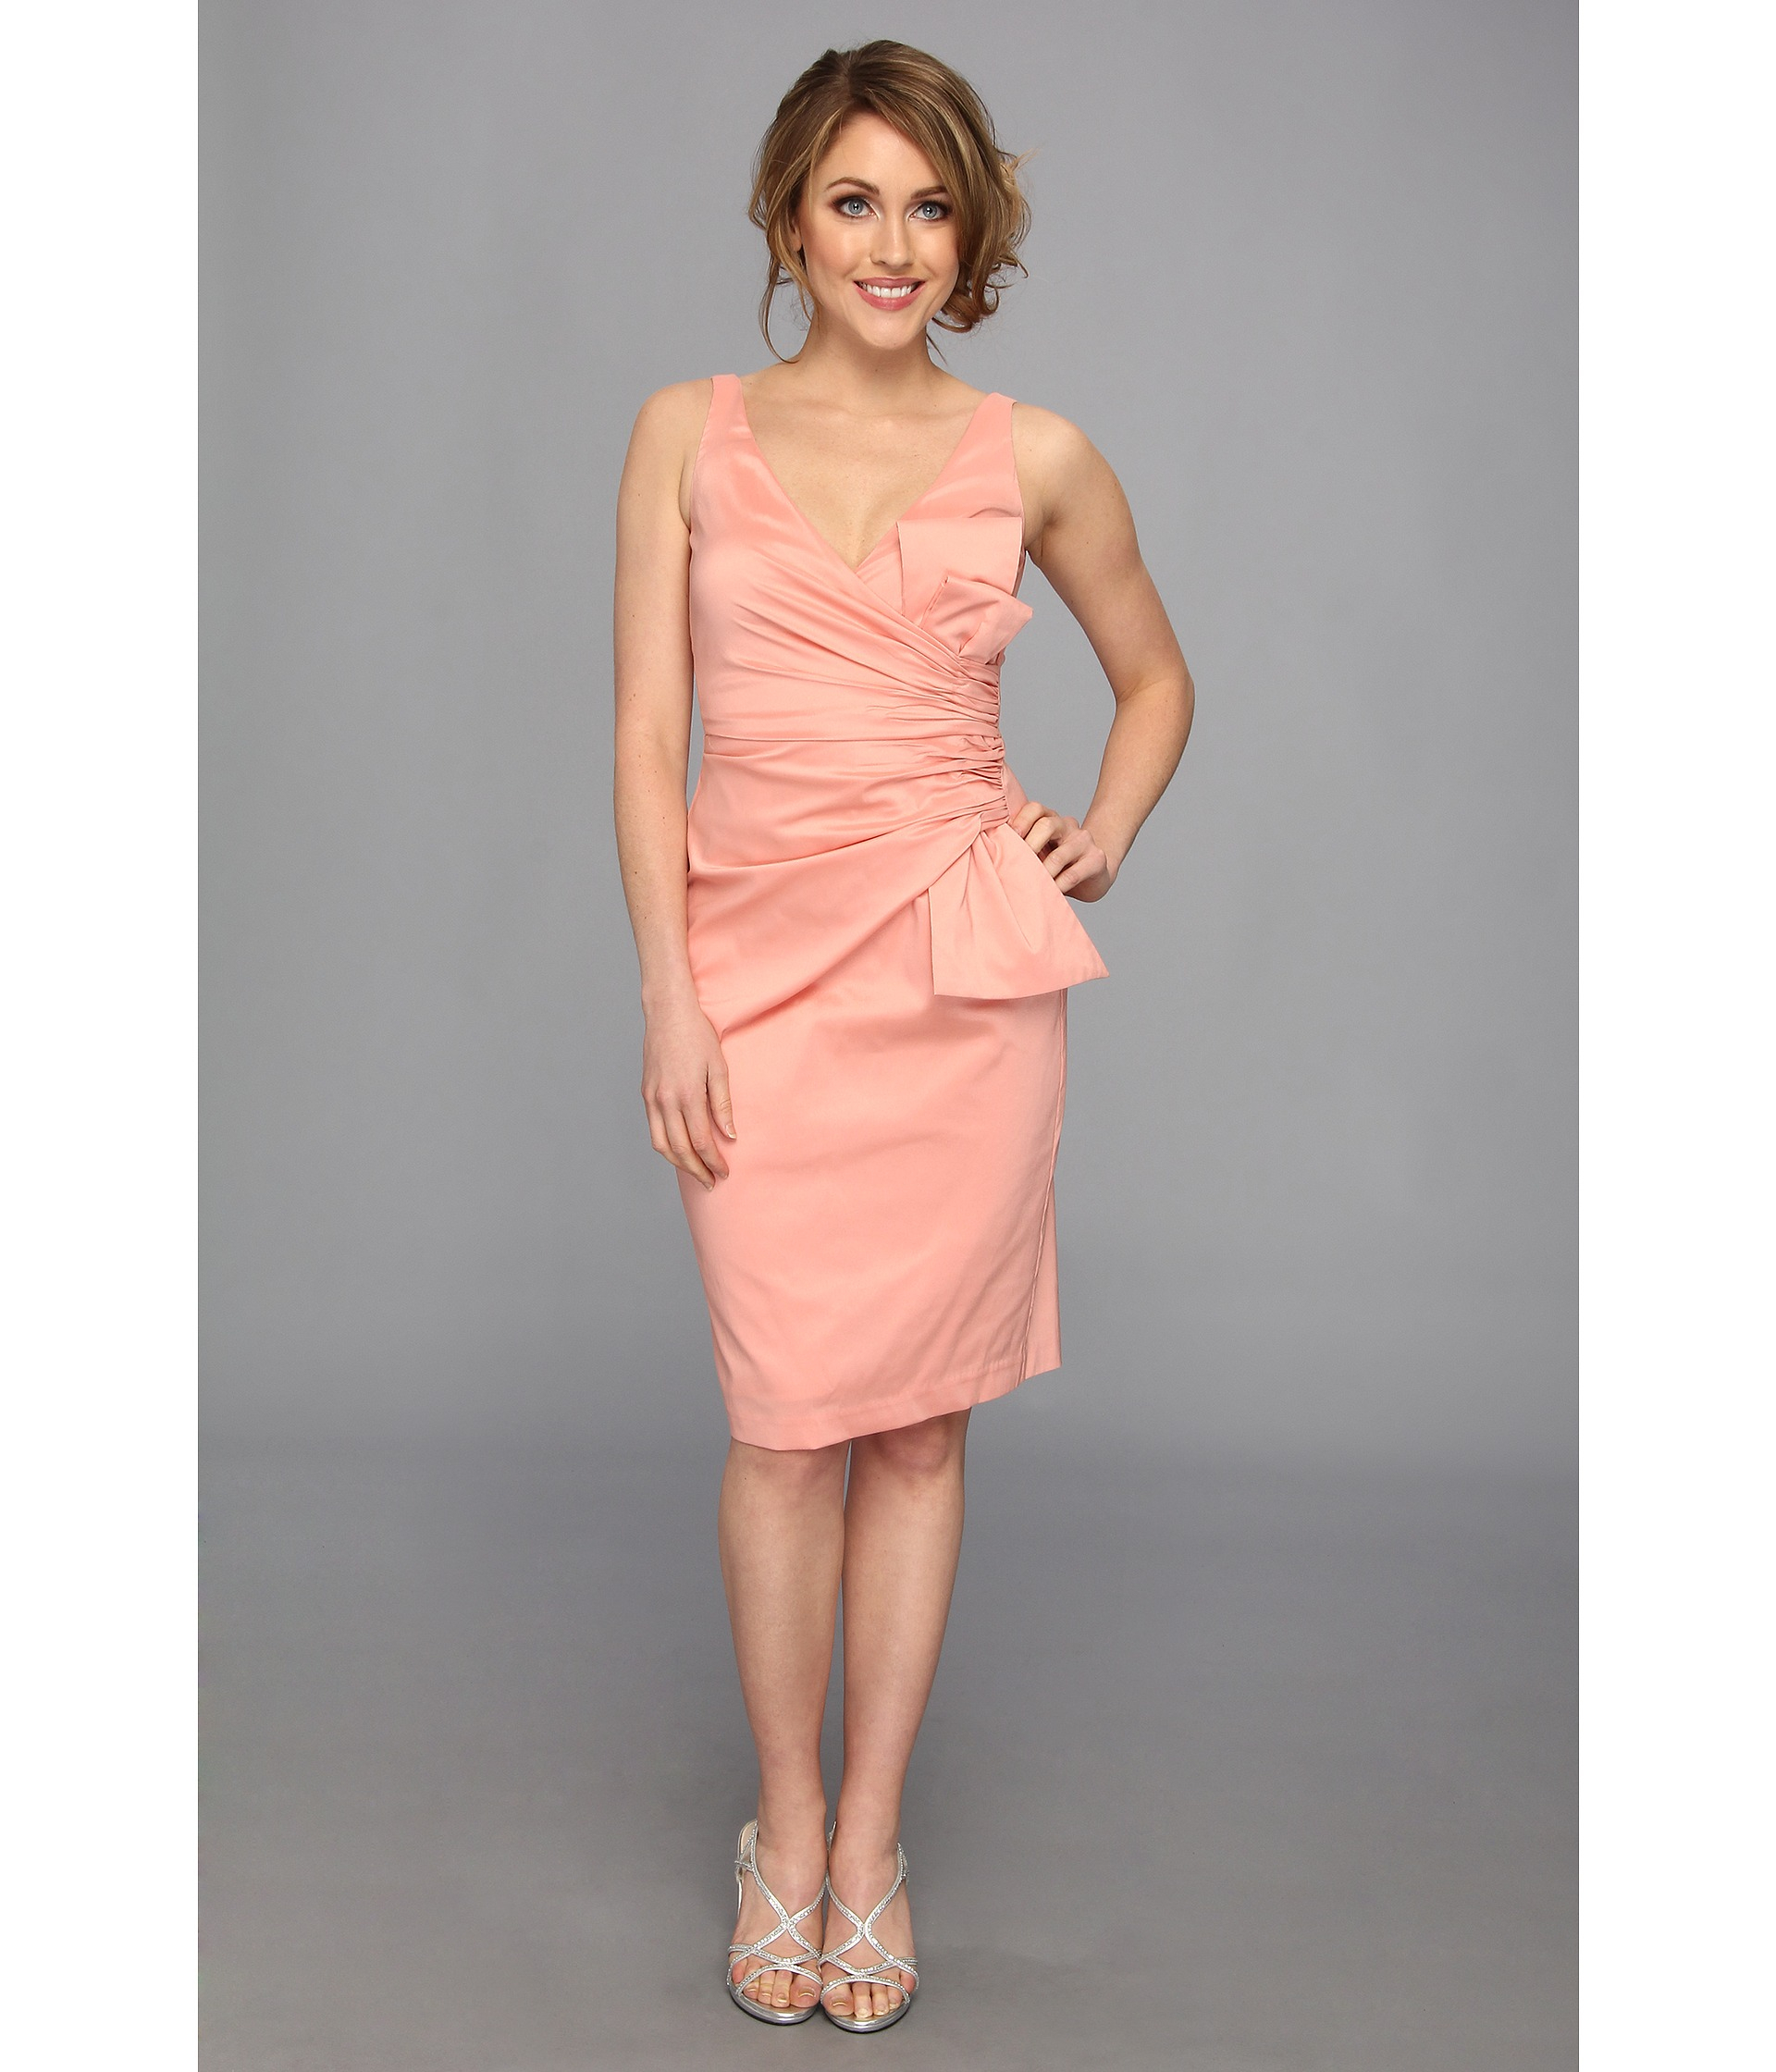 263acbc8edf Maggy London Solid Stretch Taffeta Side Bow Sleeveless Dress in Pink - Lyst